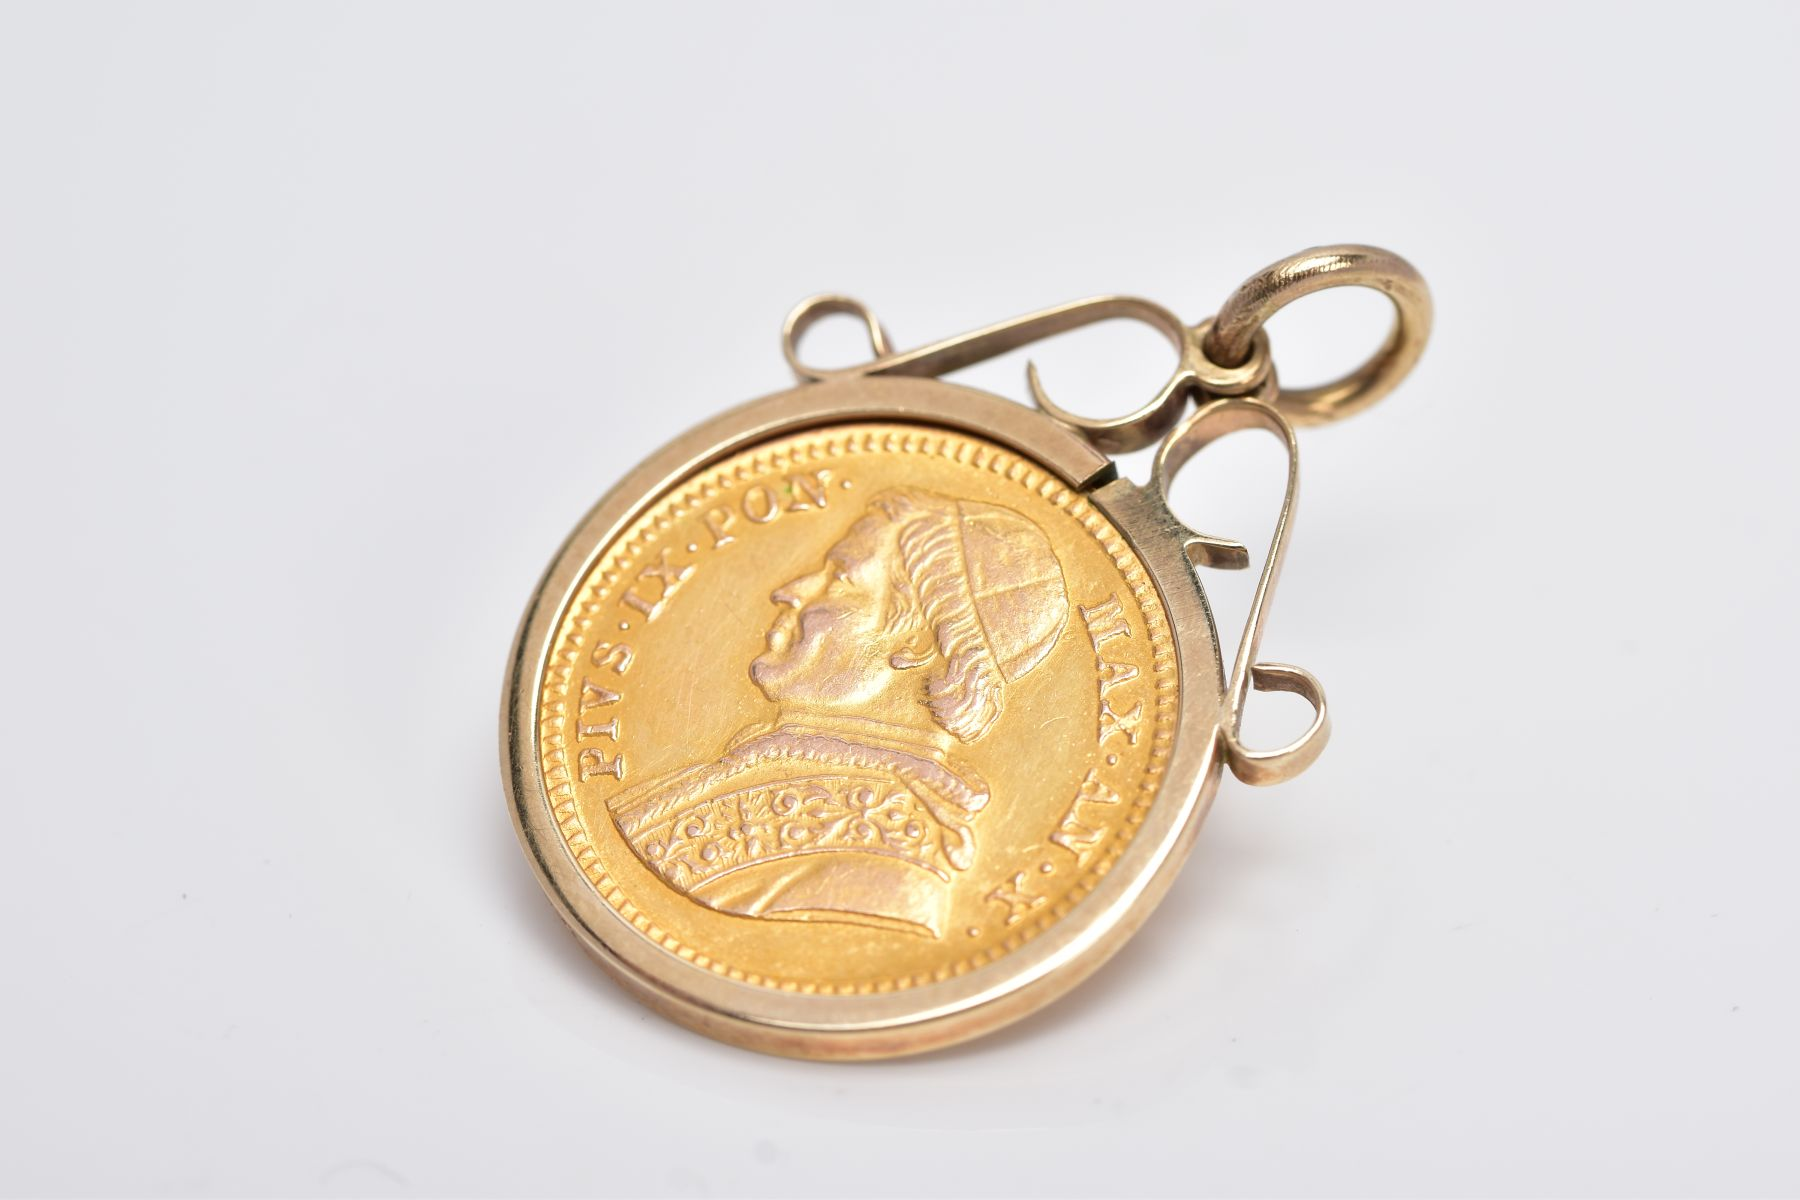 A MOUNTED 2.5 SCUDI COIN PENDANT, dated '1855', to the obverse depicts 'PIVS IX PON MAX AN X', - Image 3 of 4